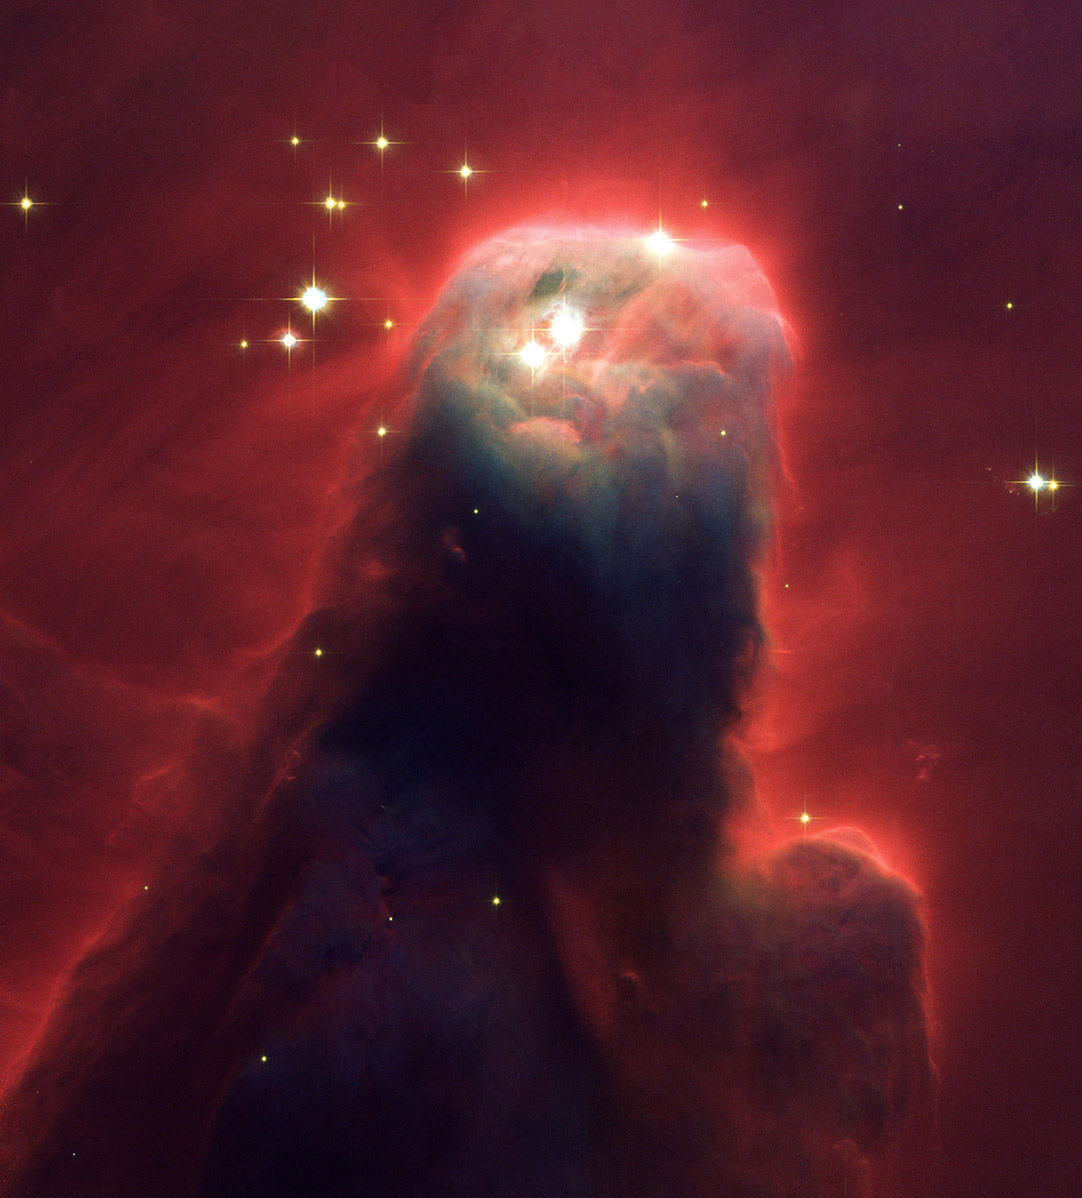 The Cone Nebula (NGC 2264), as photographed by The Hubble Space Telescope.